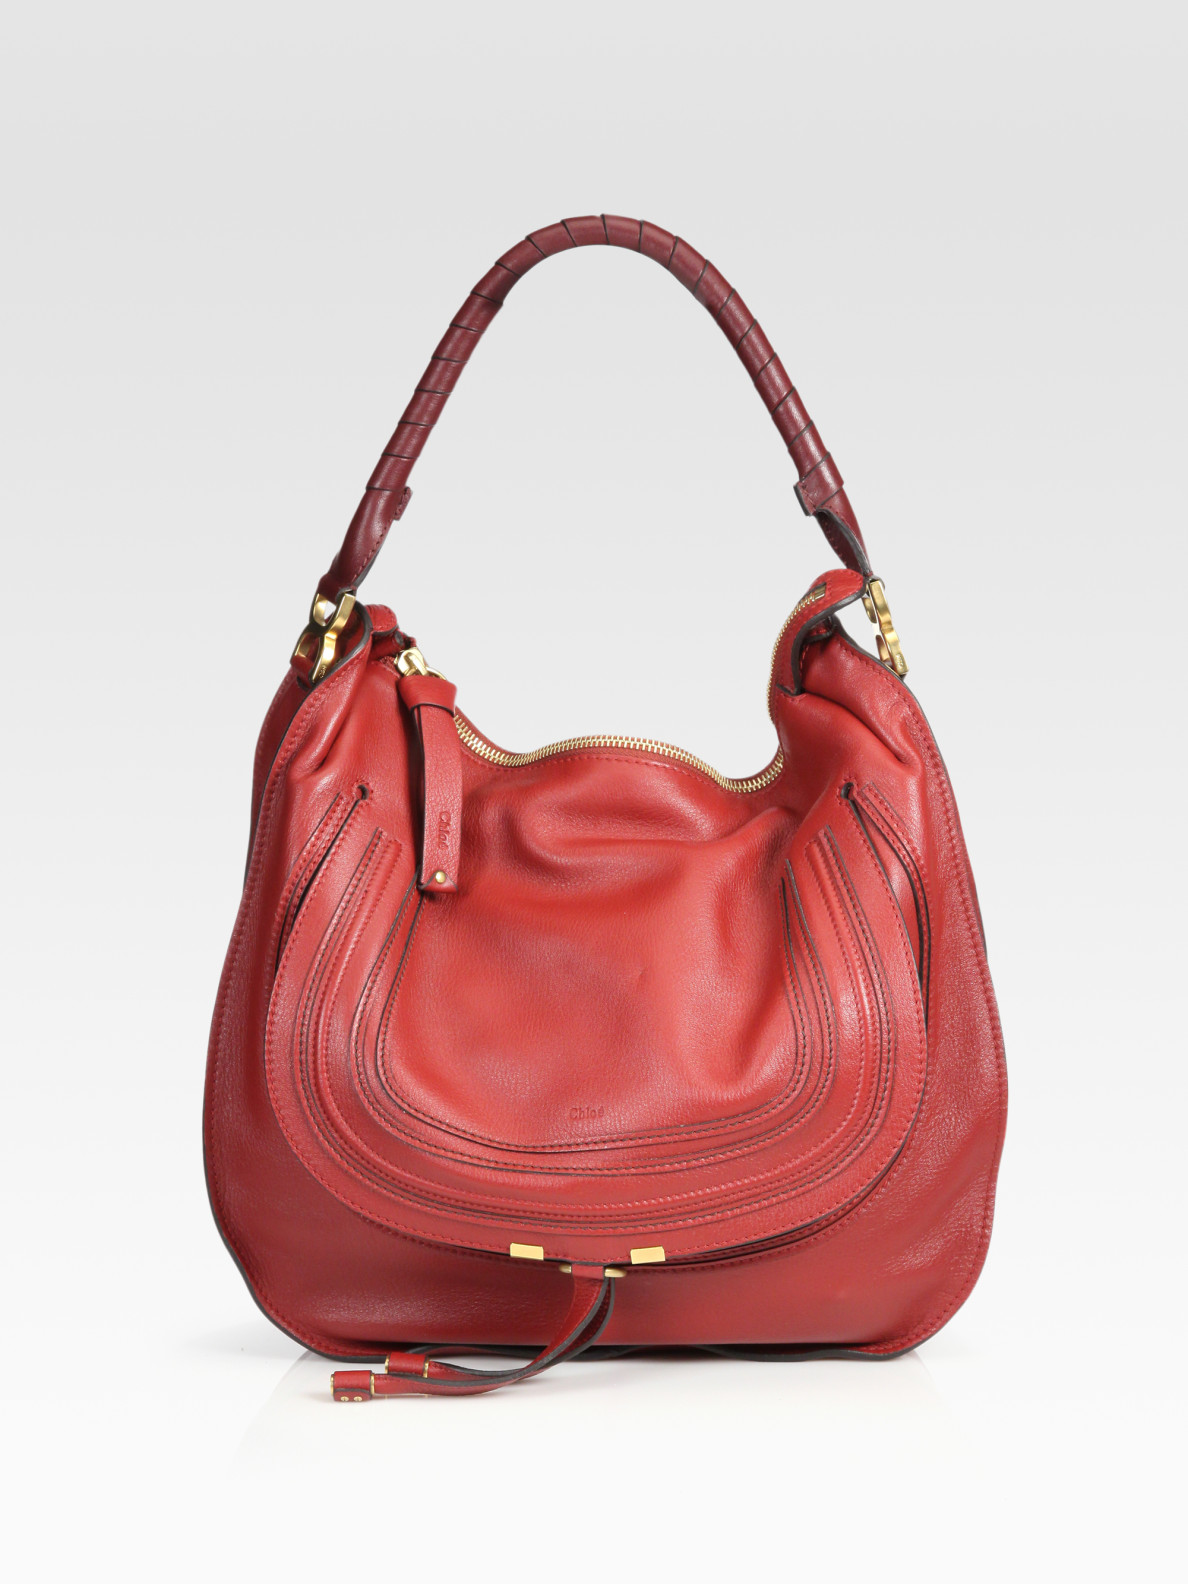 chlo large marcie hobo bag in red garnet lyst. Black Bedroom Furniture Sets. Home Design Ideas